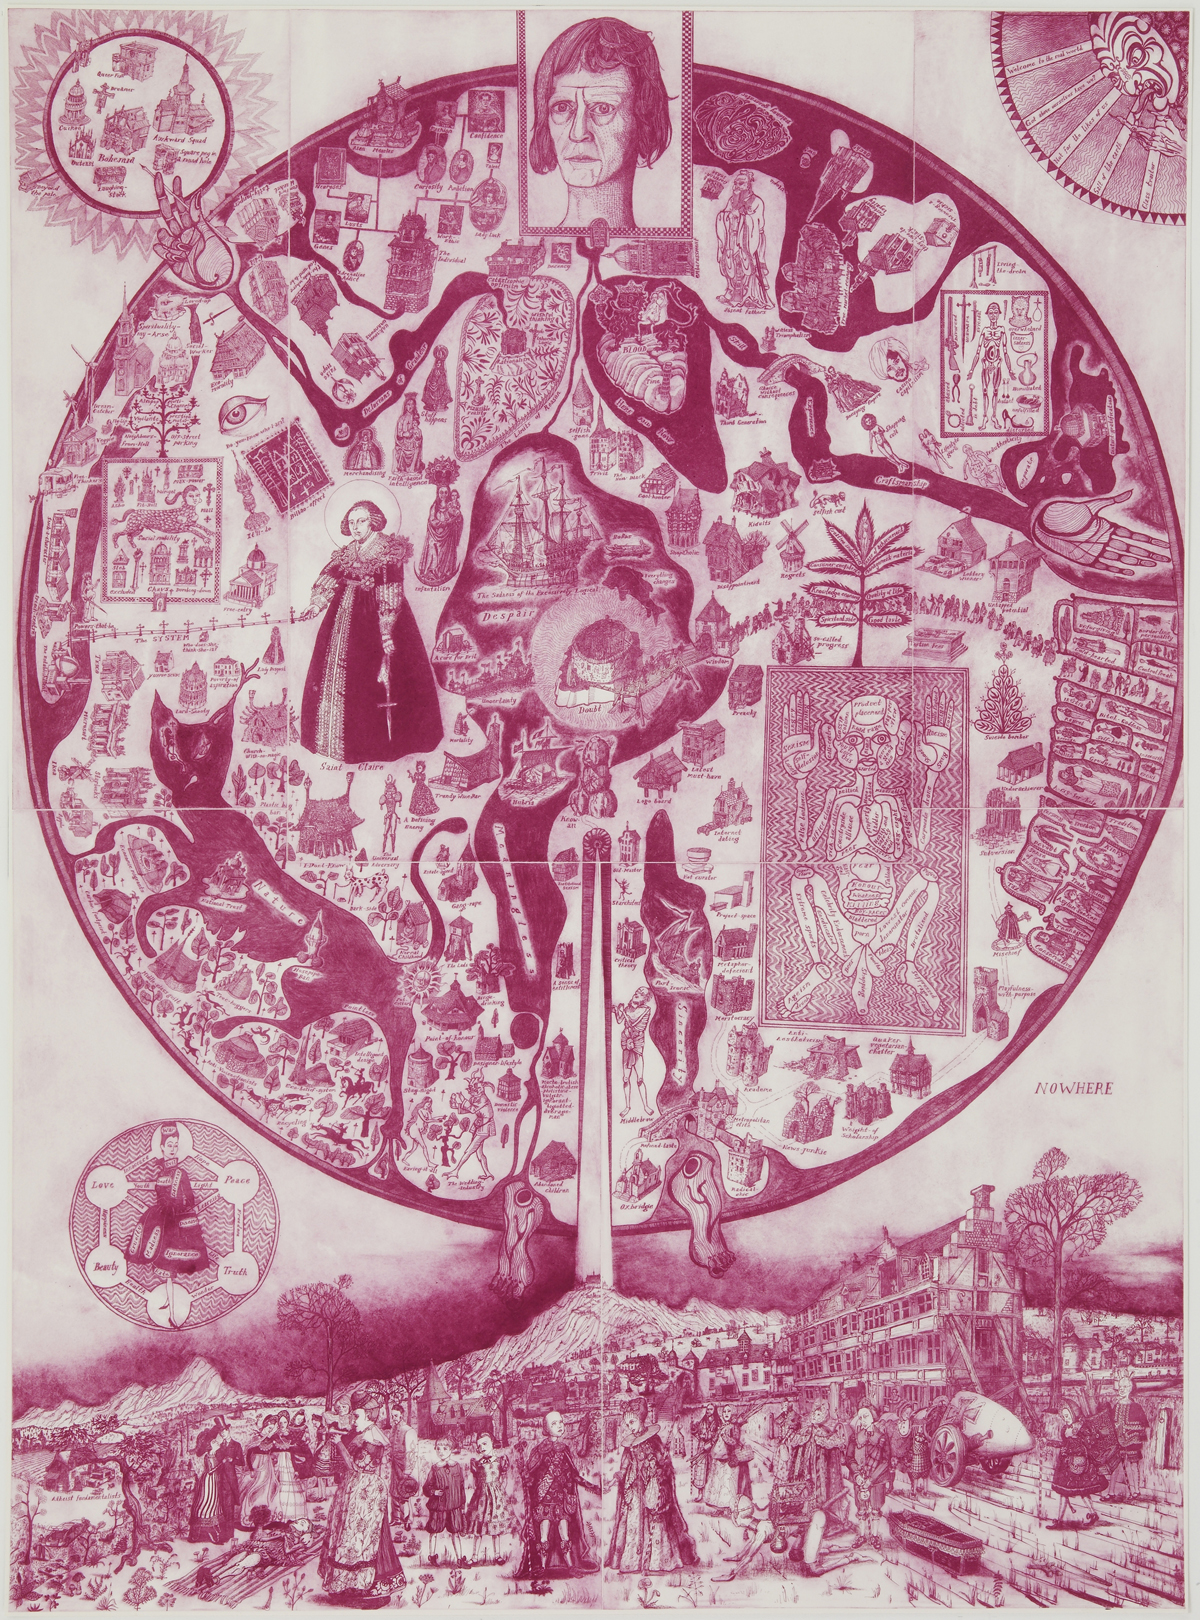 Grayson Perry Etching Acquired By Grunwald Center